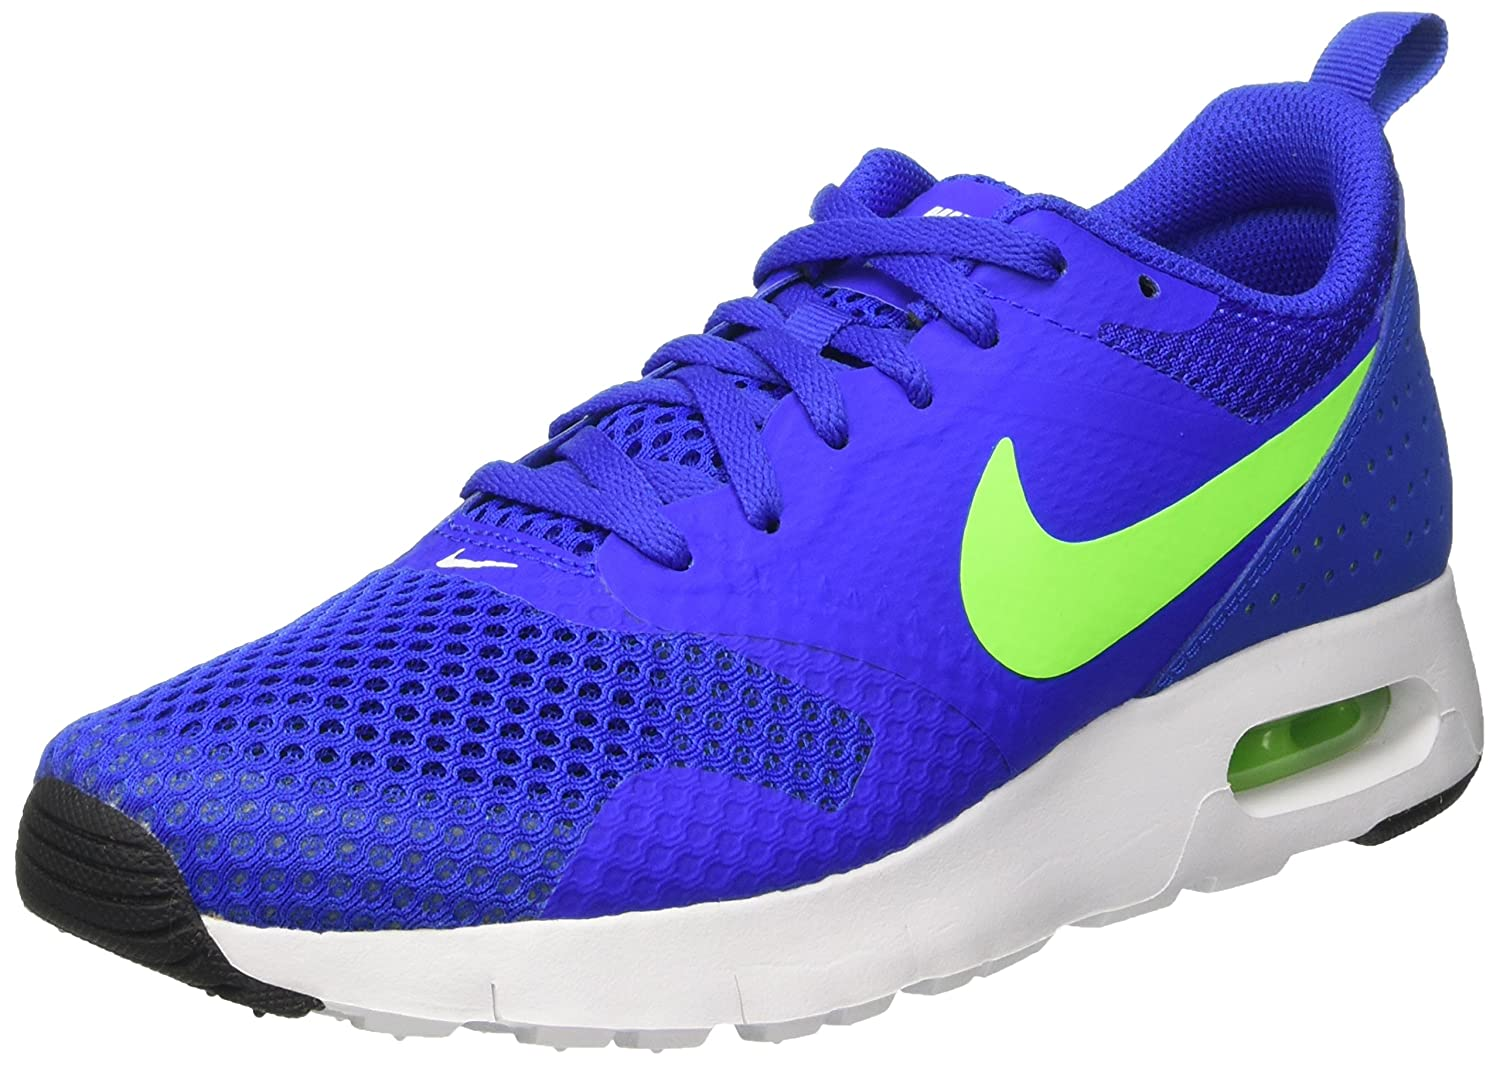 Nike Air Max Tavas BR 828569 (GS) Running Trainers 828569 BR Sneakers Shoes (6.5 D(M) US, racer blue electric green white 431) 6e83d5